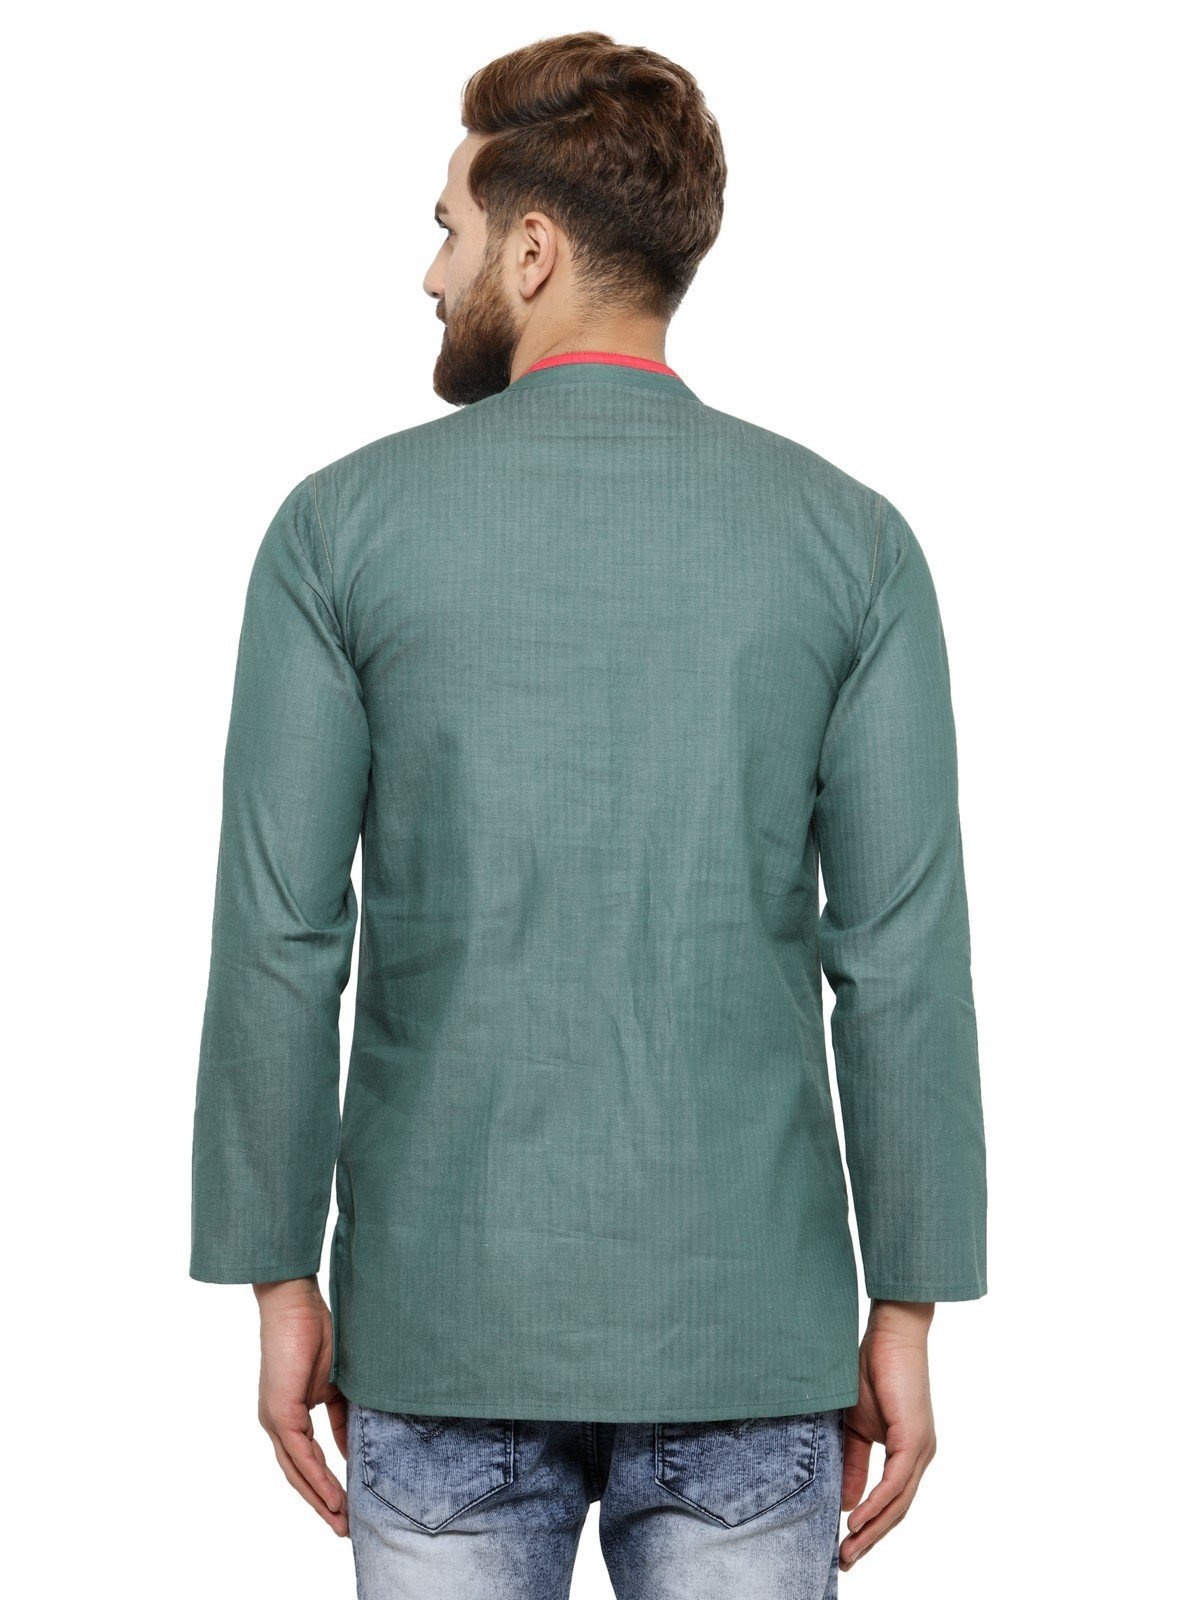 Apparel Men's Cotton Designer Short Kurta 42 Green by ARCH ELEMENTS (Image #4)